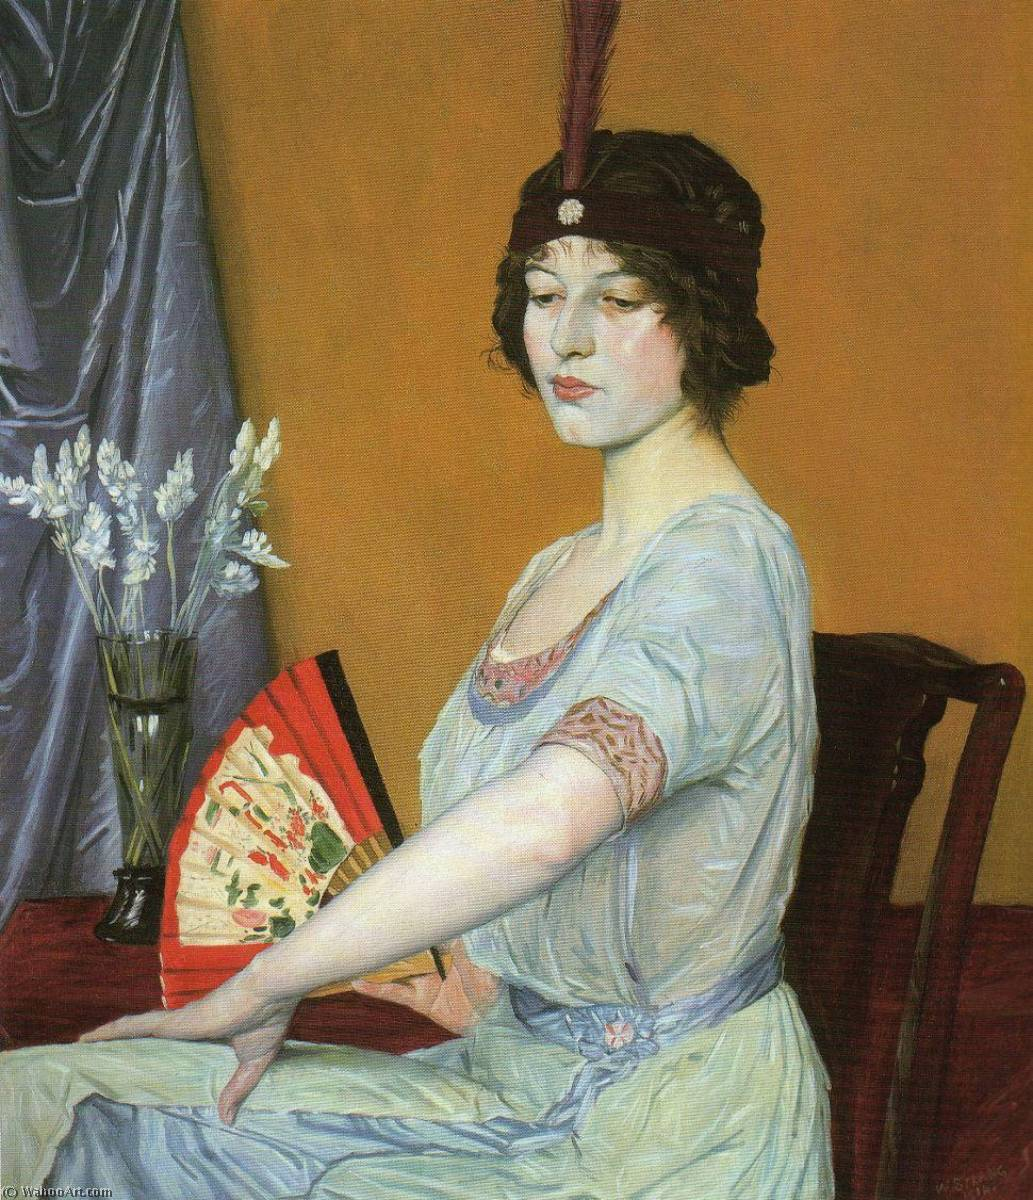 La Fan japonesa, 1910 de William Strang (1859-1921)